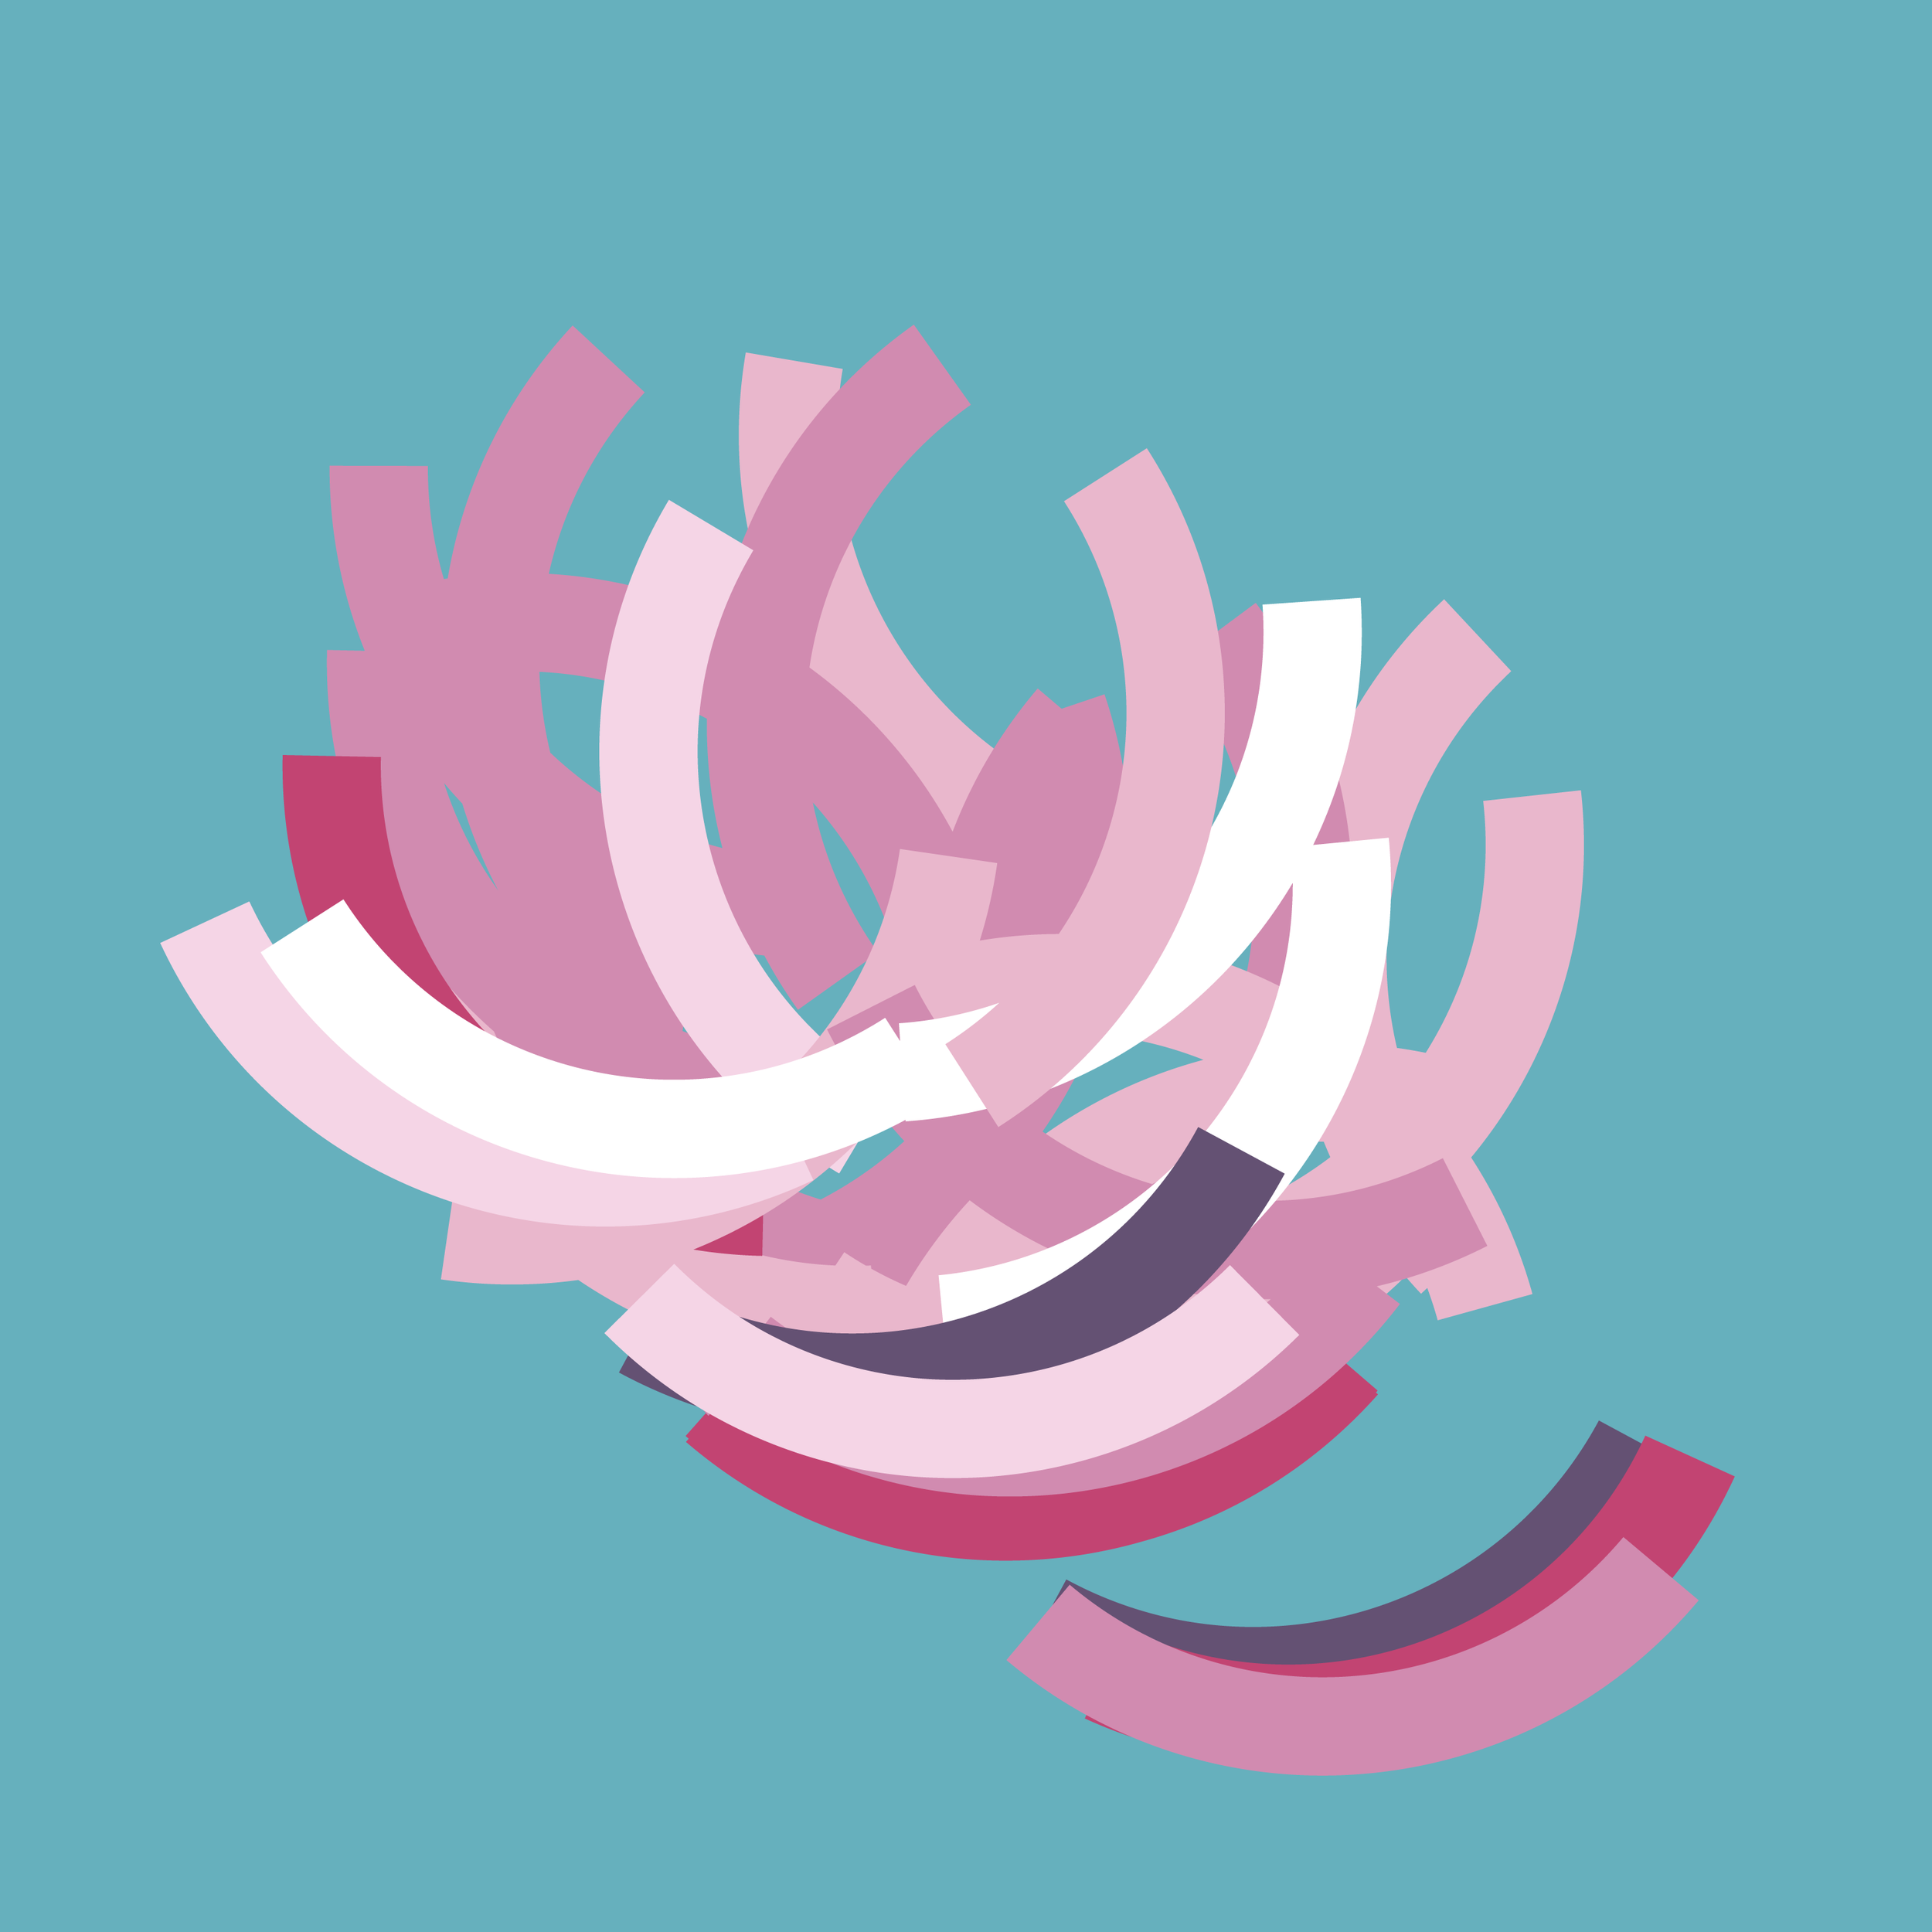 Flower_7-01.png